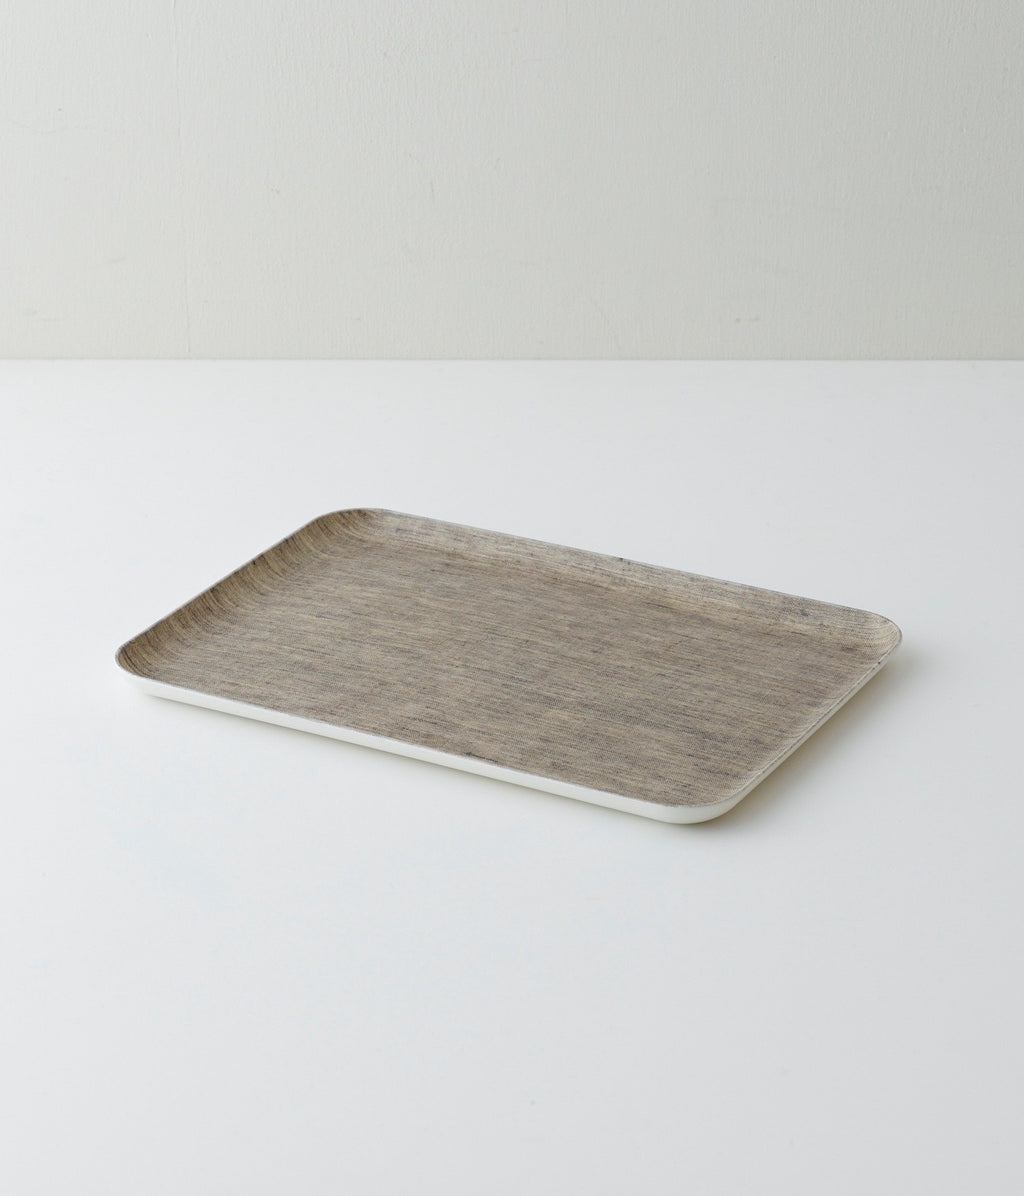 Linen Tray Medium: Natural